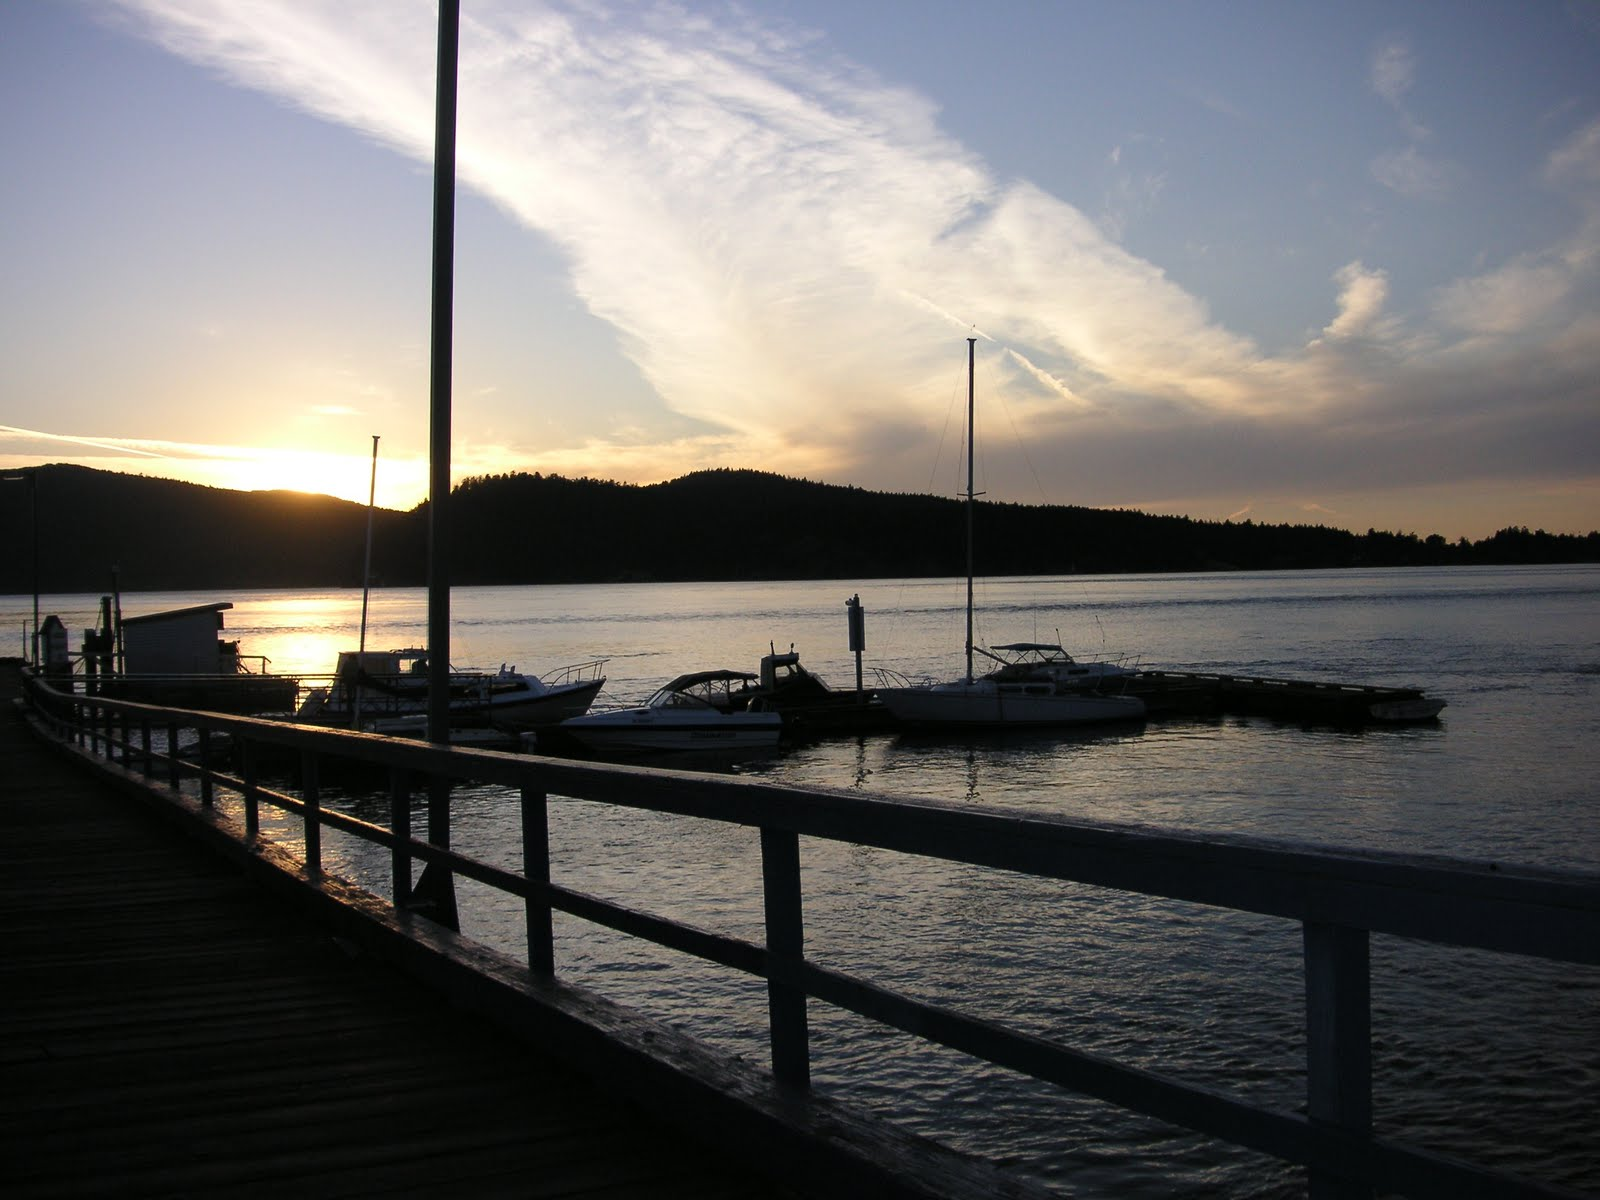 Mayne Island How To Get There